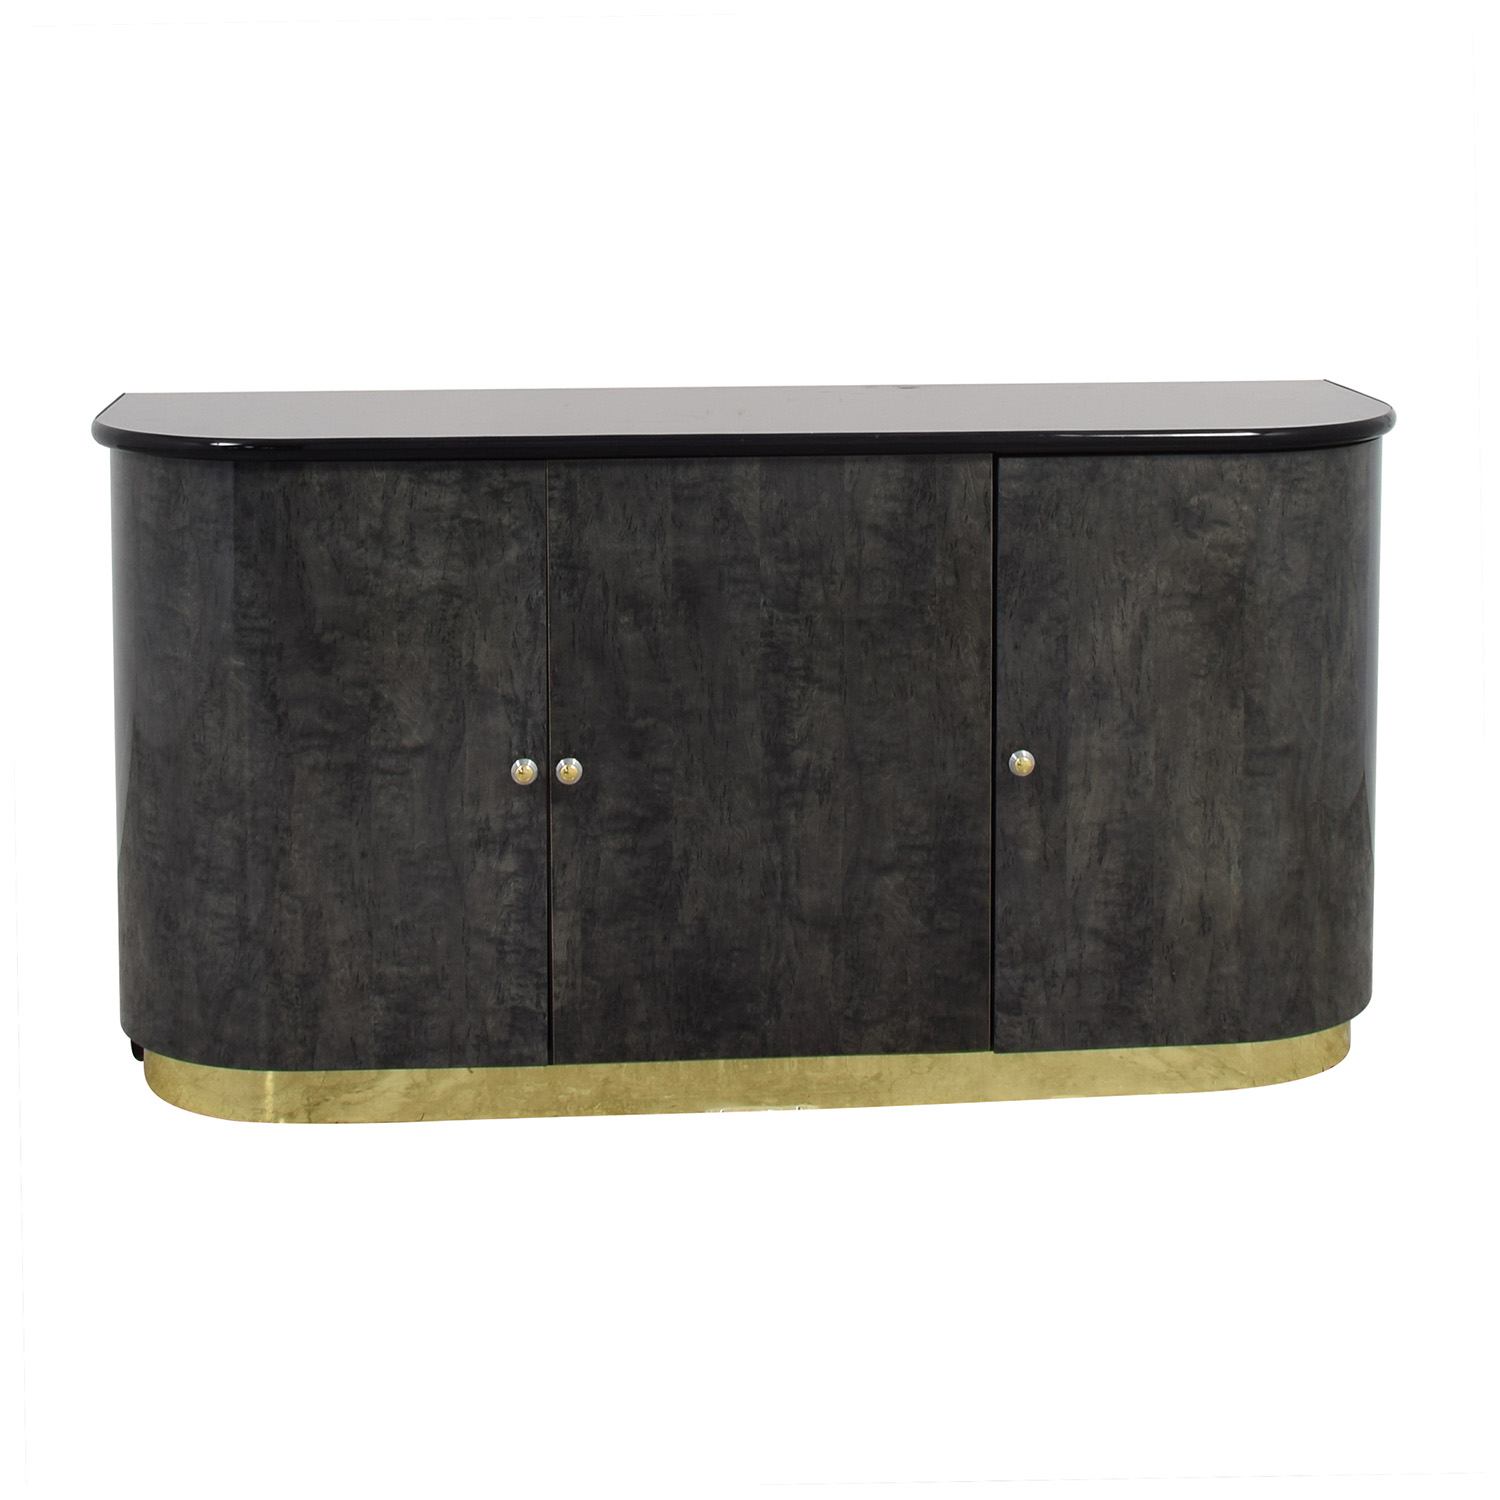 buy Black Dining Room Cabinet with Gold Accents Storage